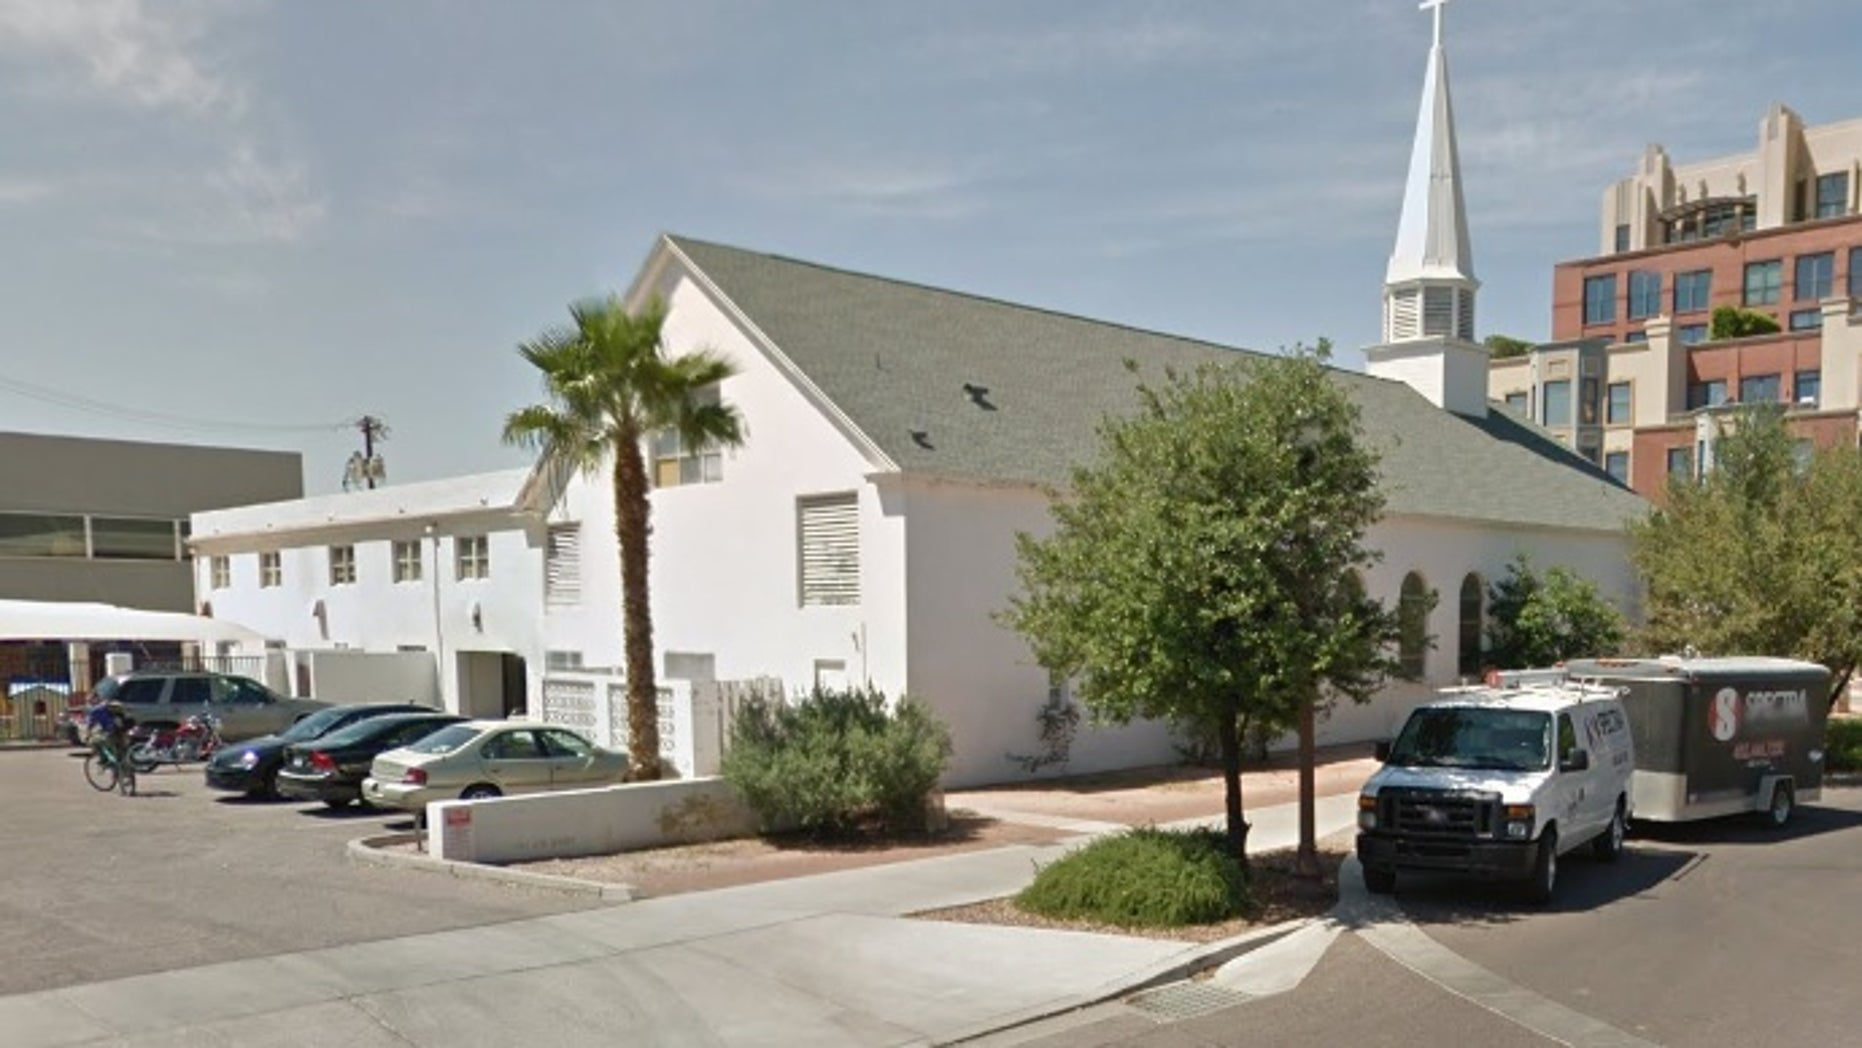 The First Congregational United Church of Christ in Tempe.